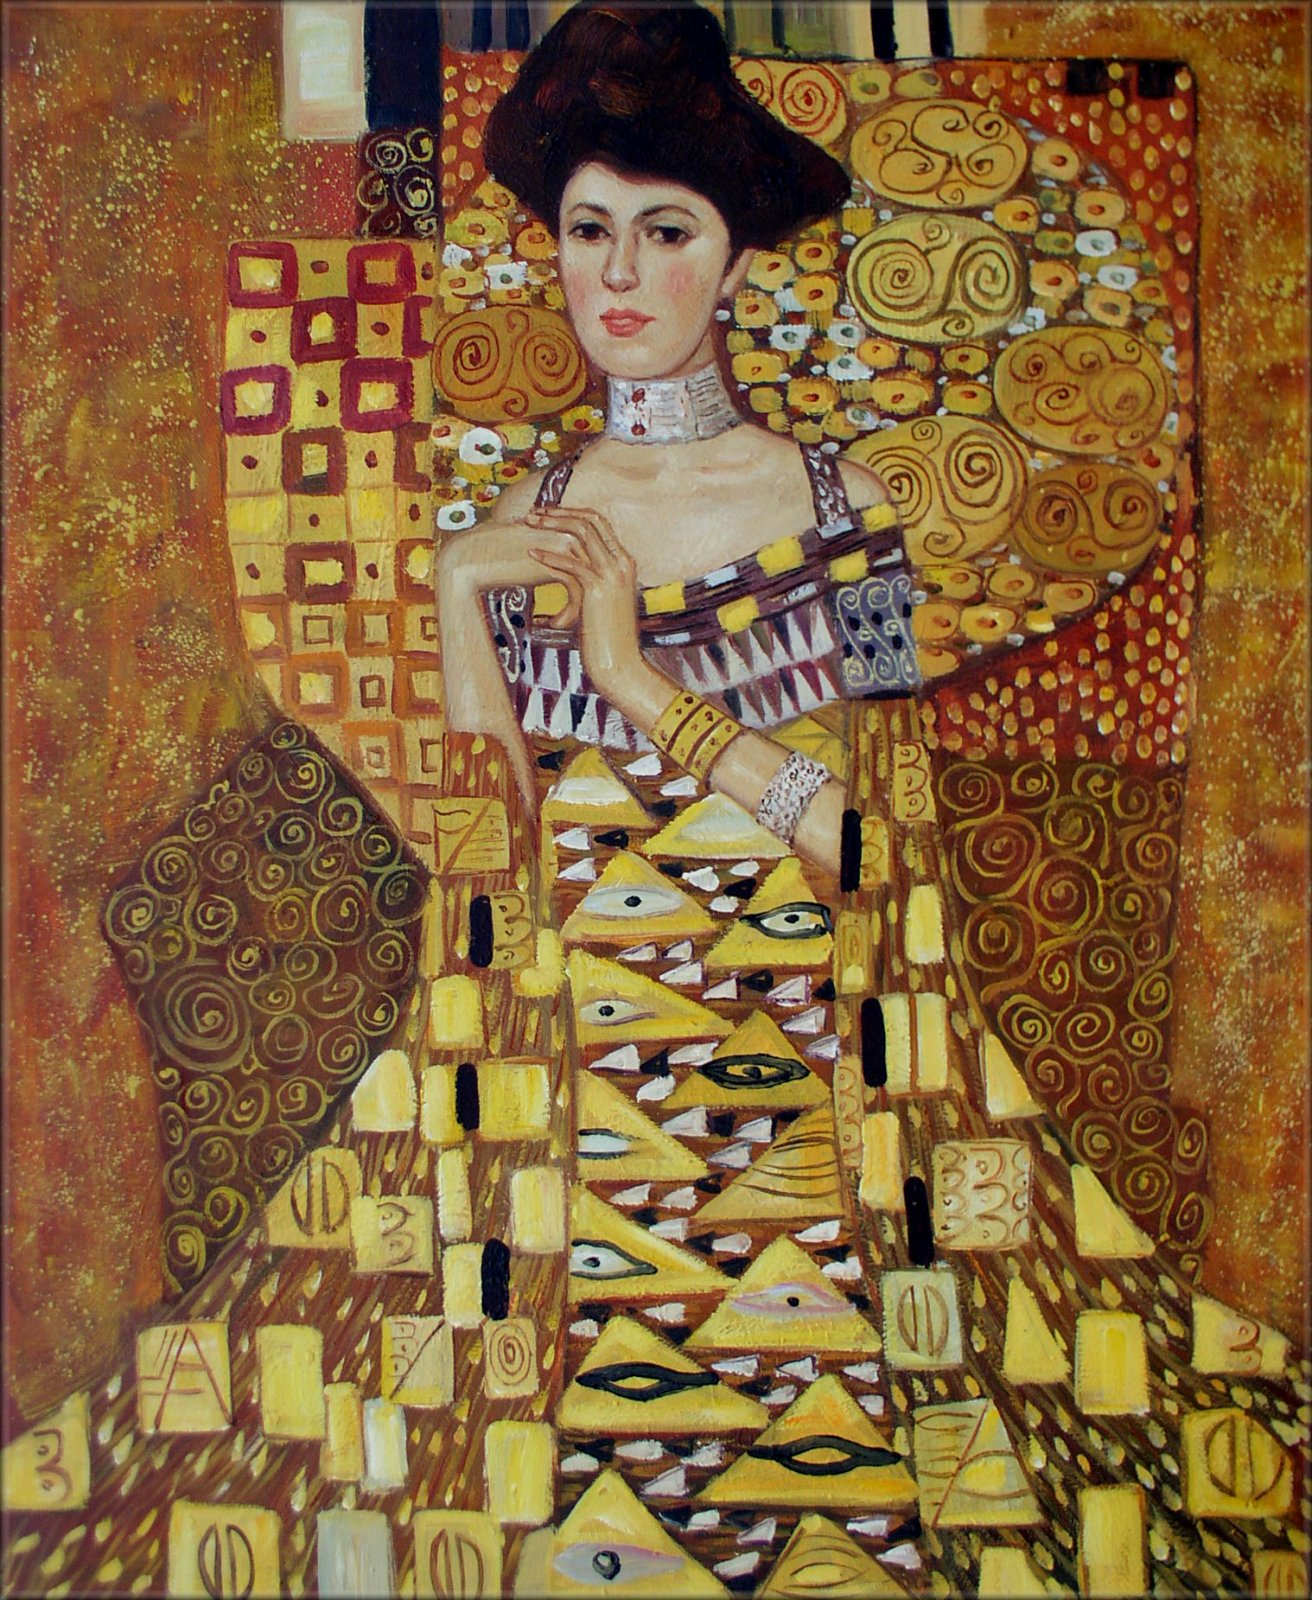 framed gustav klimt portrait of adele bloch bauer i repro oil painting 20x24in ebay. Black Bedroom Furniture Sets. Home Design Ideas